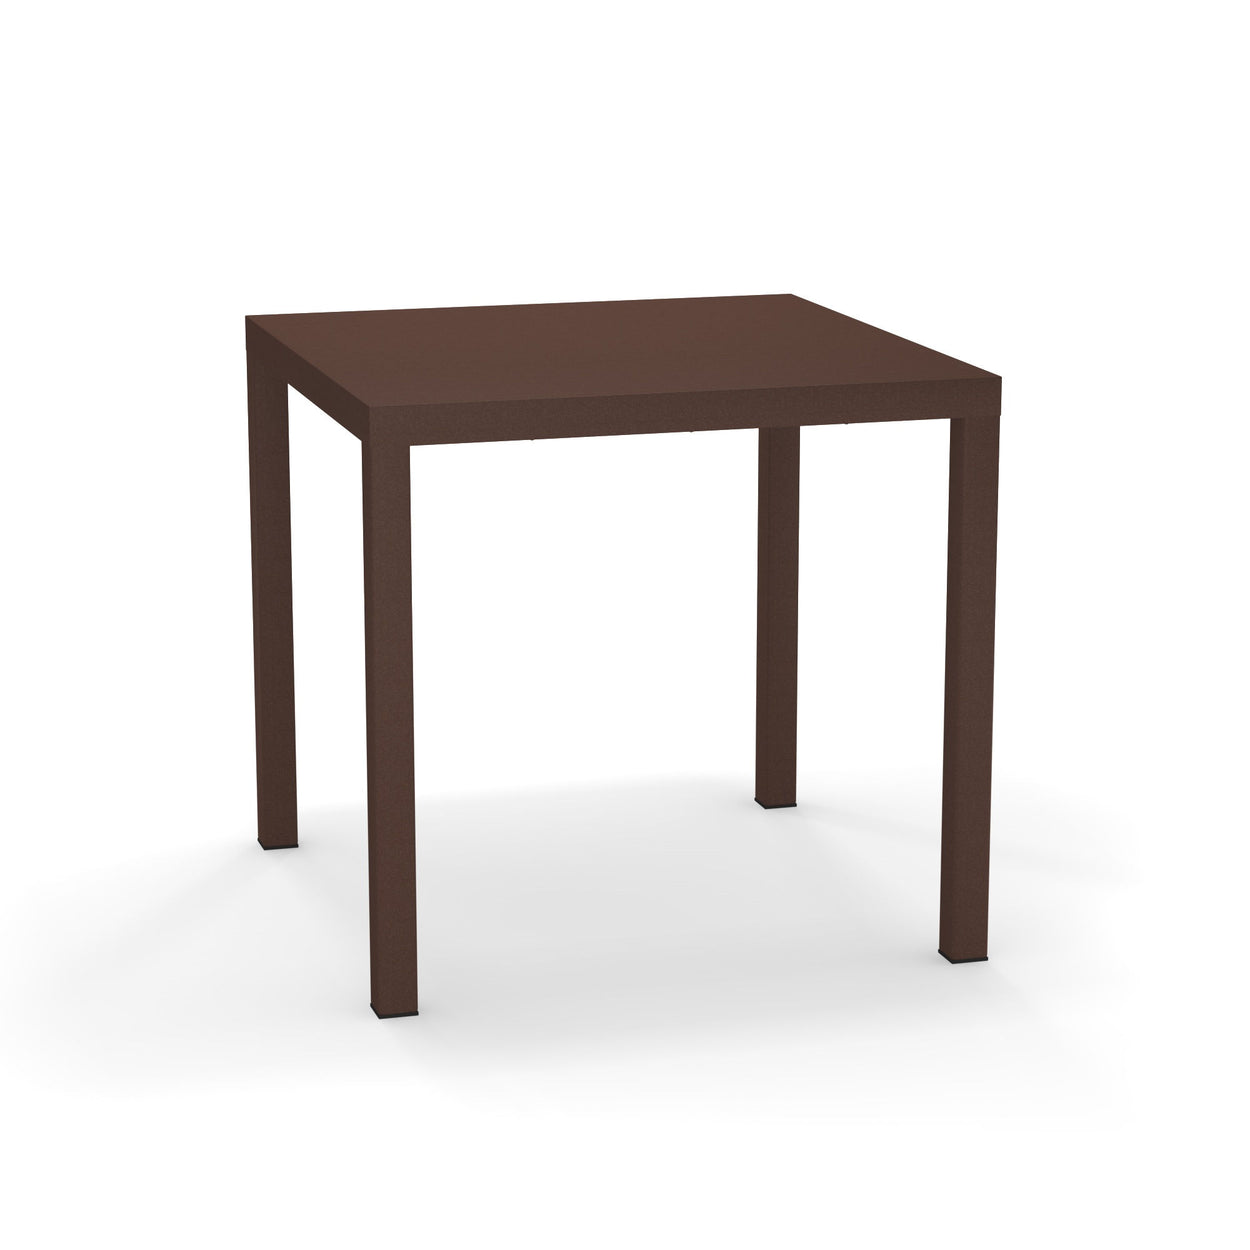 EMU Nova Square Table 80 x 80 cm (Set of 6)